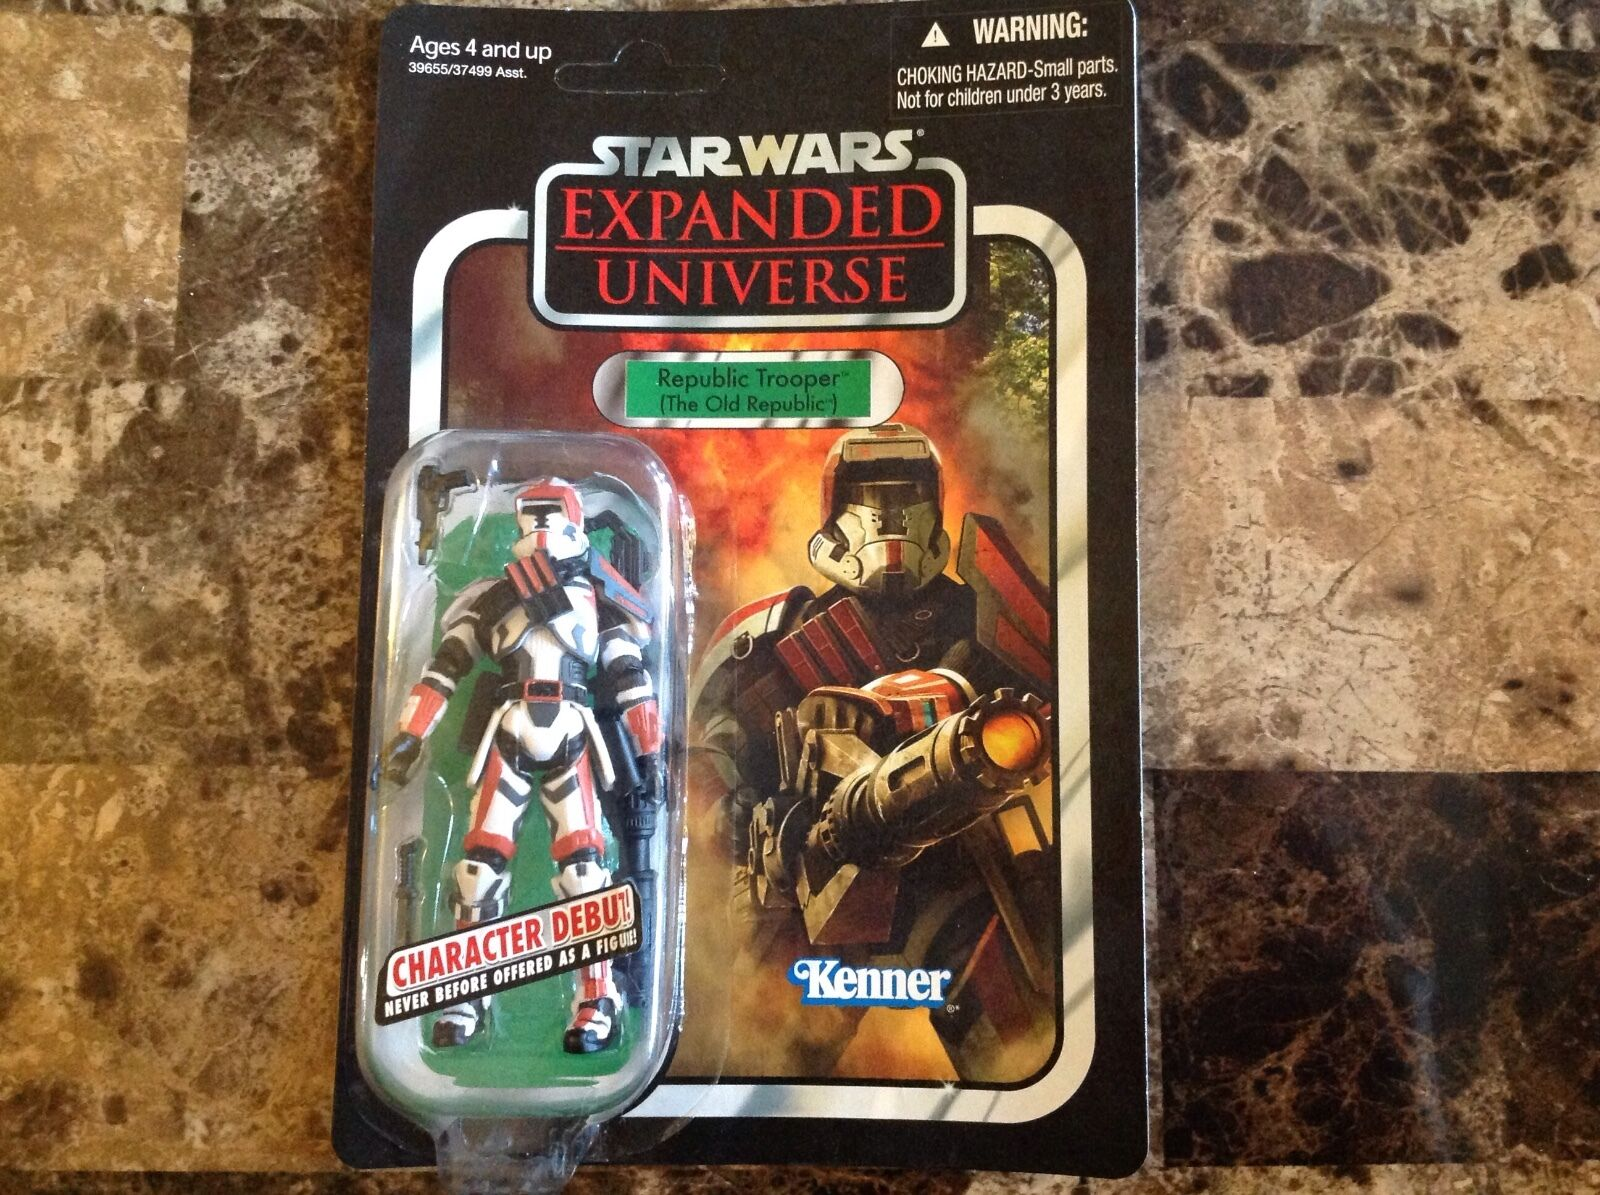 Star Wars Action Figure  Expanded Universe  Republic Trooper (The Old Republic)